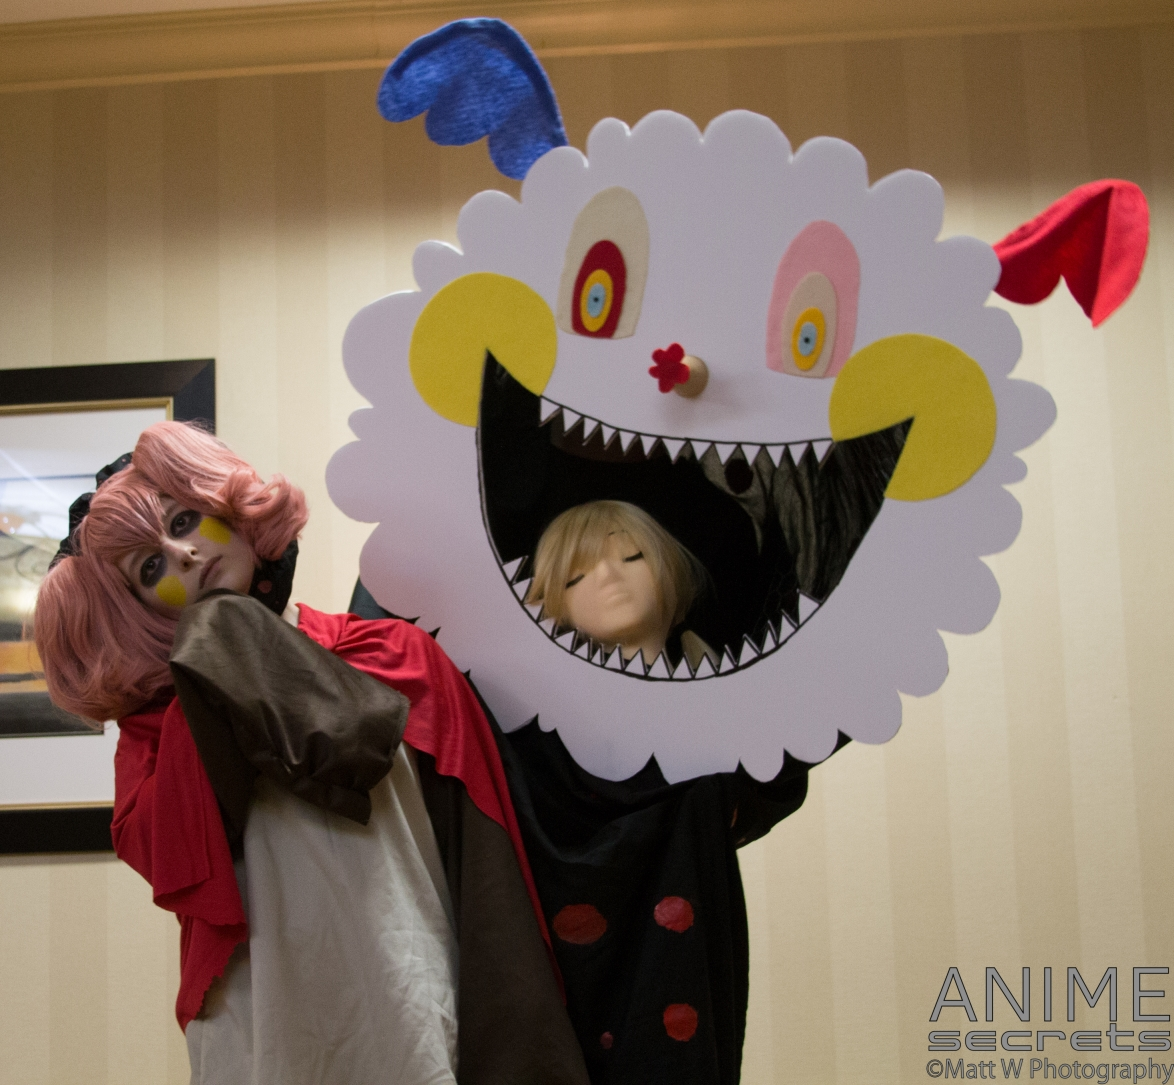 Louisianime 2015 – Cosplay Contest Photo Gallery #1